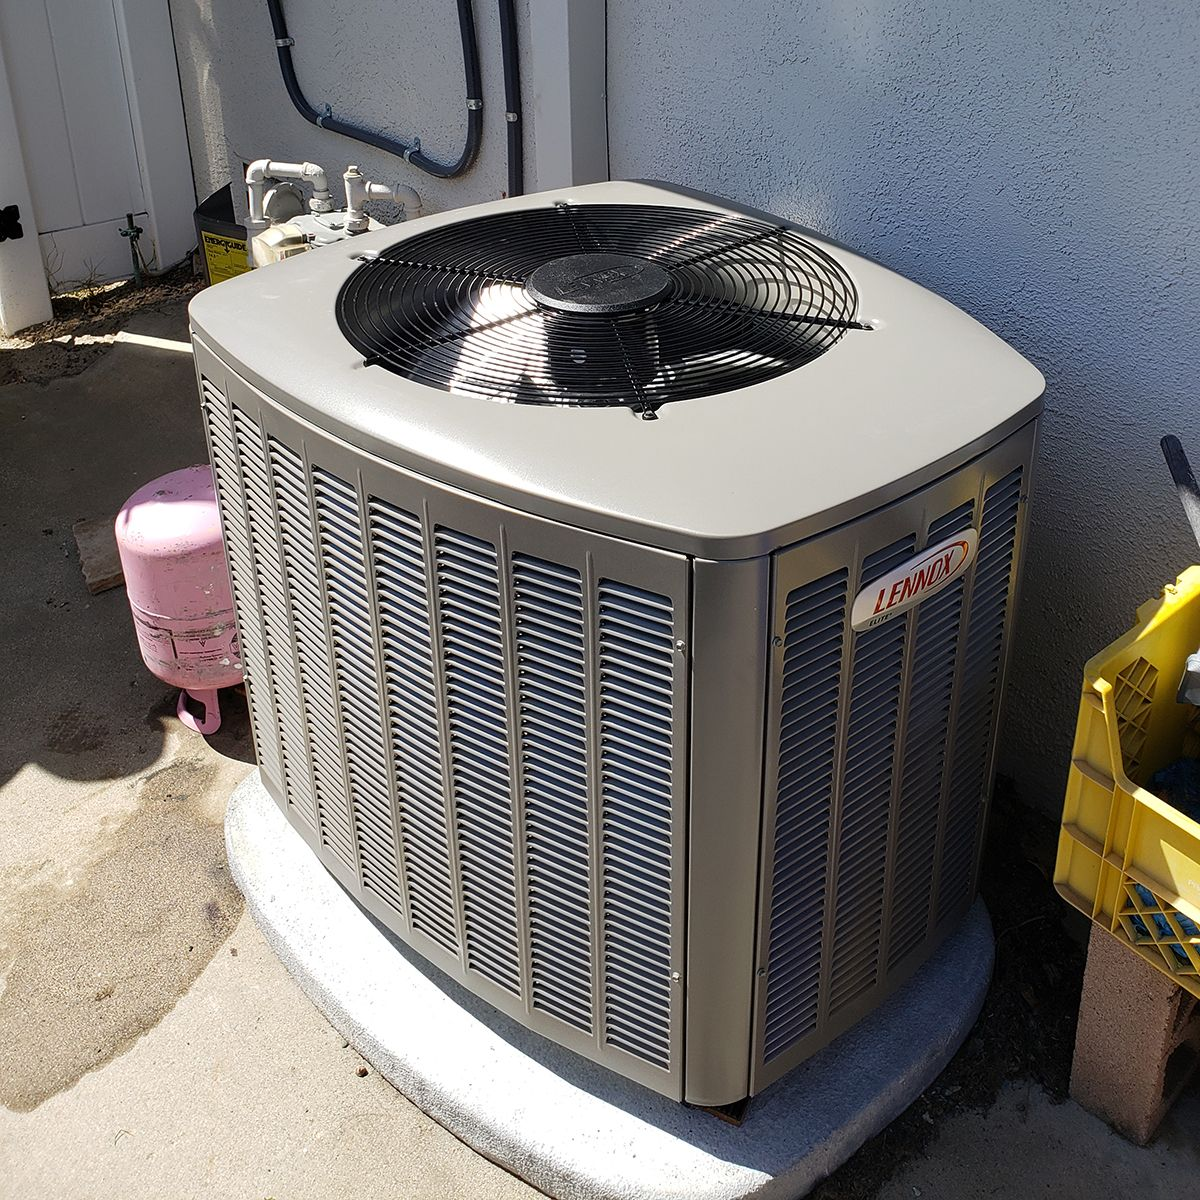 San Diego's 1 Cooling & A/C Services (With images